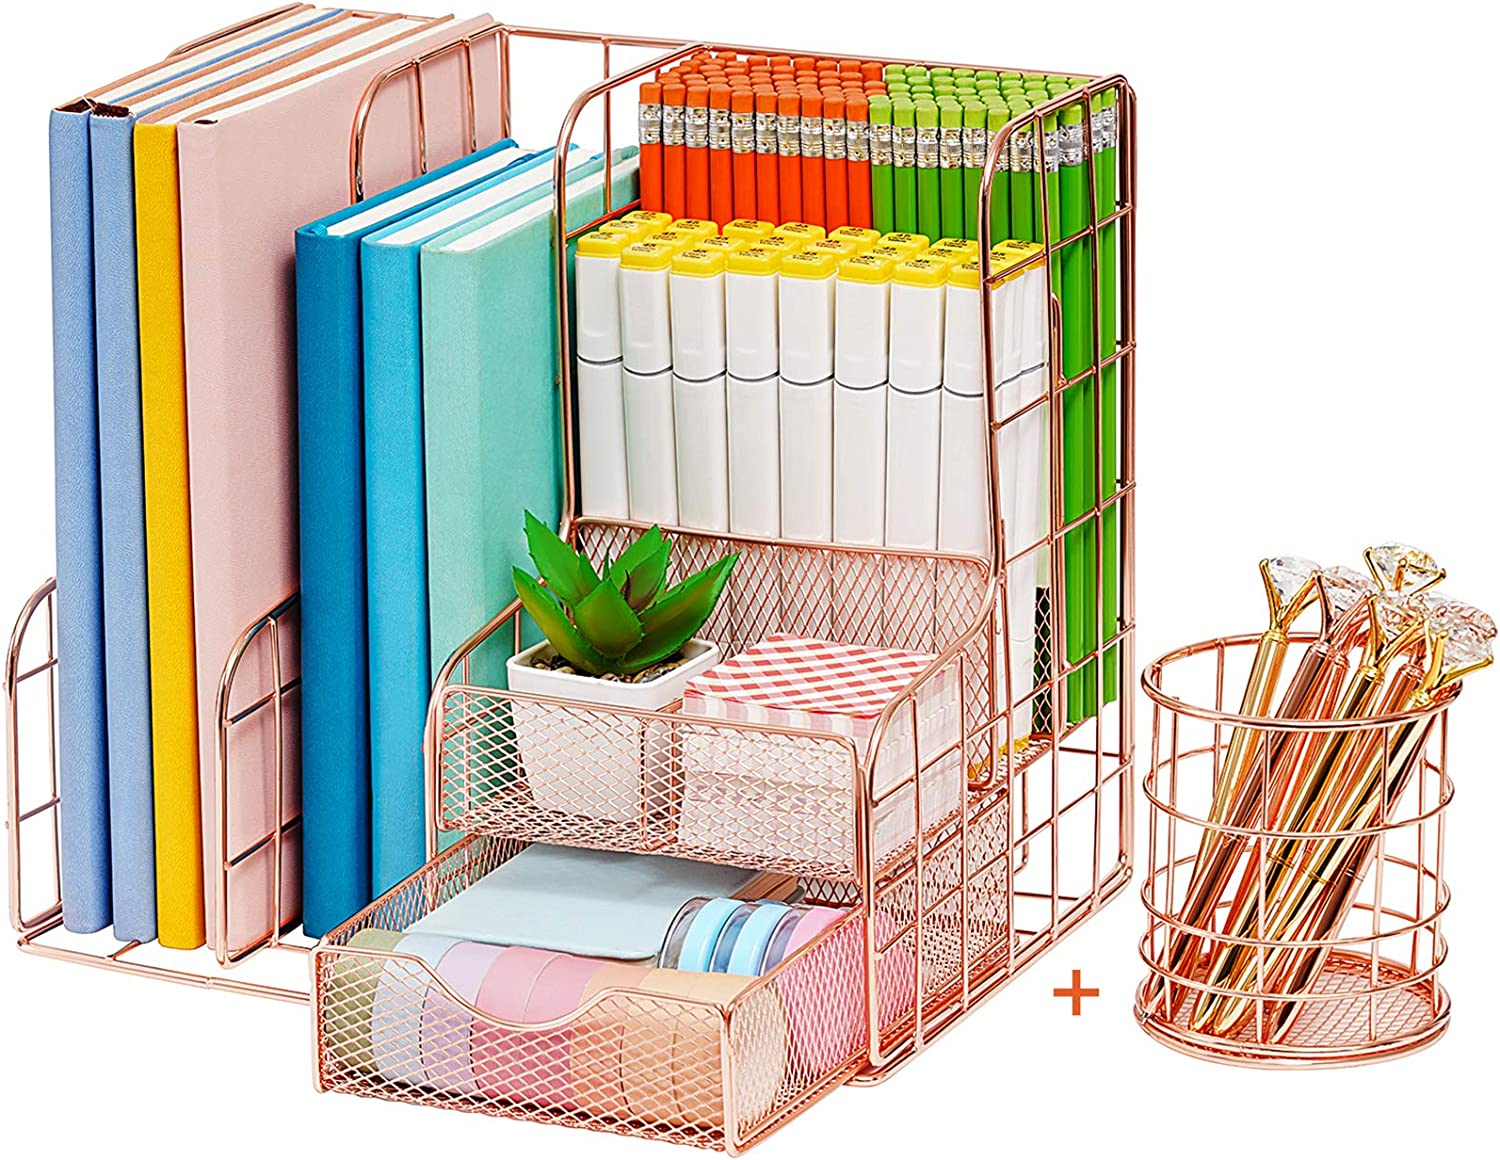 Marbrasse Rose Gold Desk Organizer for Women, Multi-Functional Mesh Desk Organizers and Accessories, Large Capacity Metal Office Supplies and Accessories for Home Office School, 2 Pack (rose gold)…